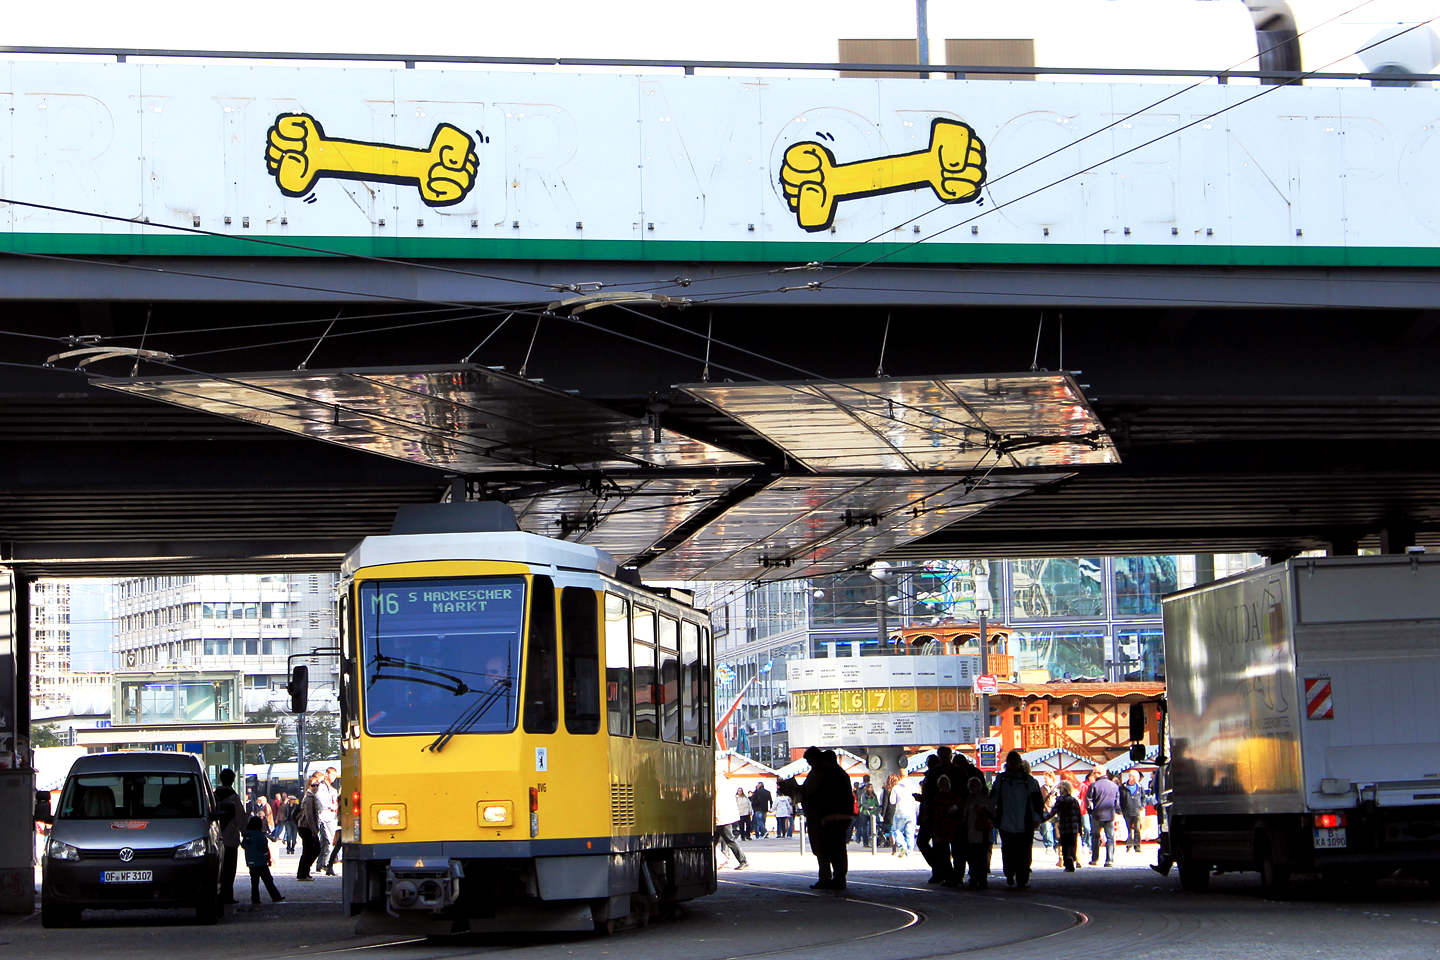 Yellow Fists (Gelbe Fauste) by Kripoe CBS Crew (Cowboys) at Alexanderplatz in Berlin. Graffiti photo by Street Art Berlin